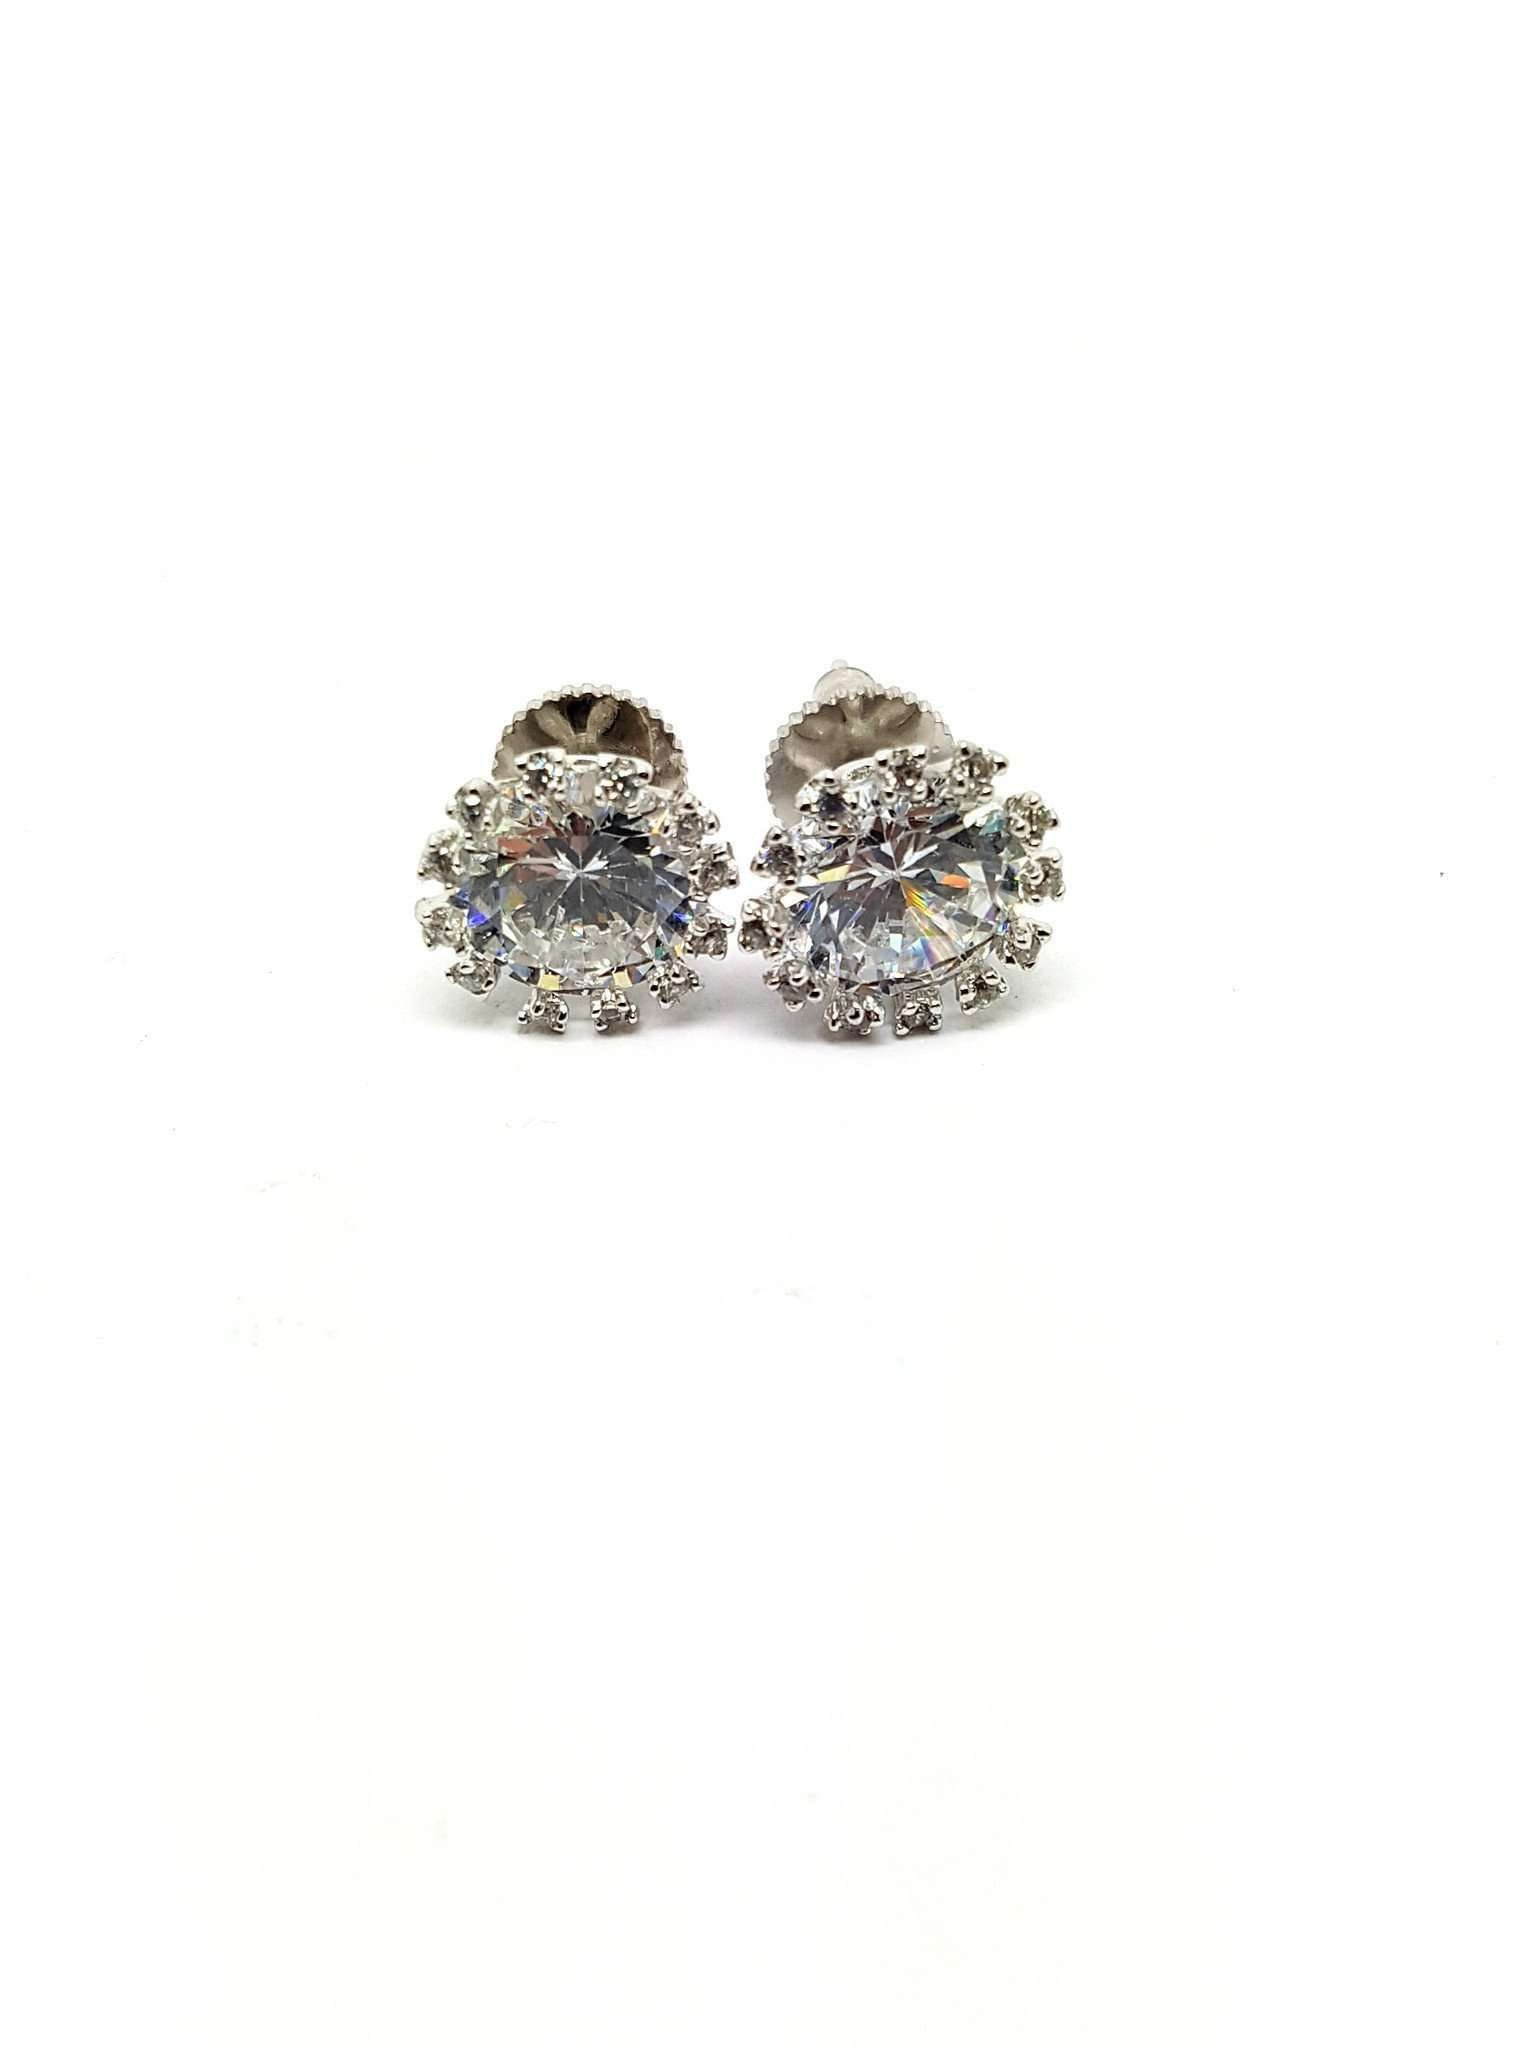 AD GG1016 vp - Cubic Zirconia Stud Earrings at amazing value, party, gift - Prachy Creations